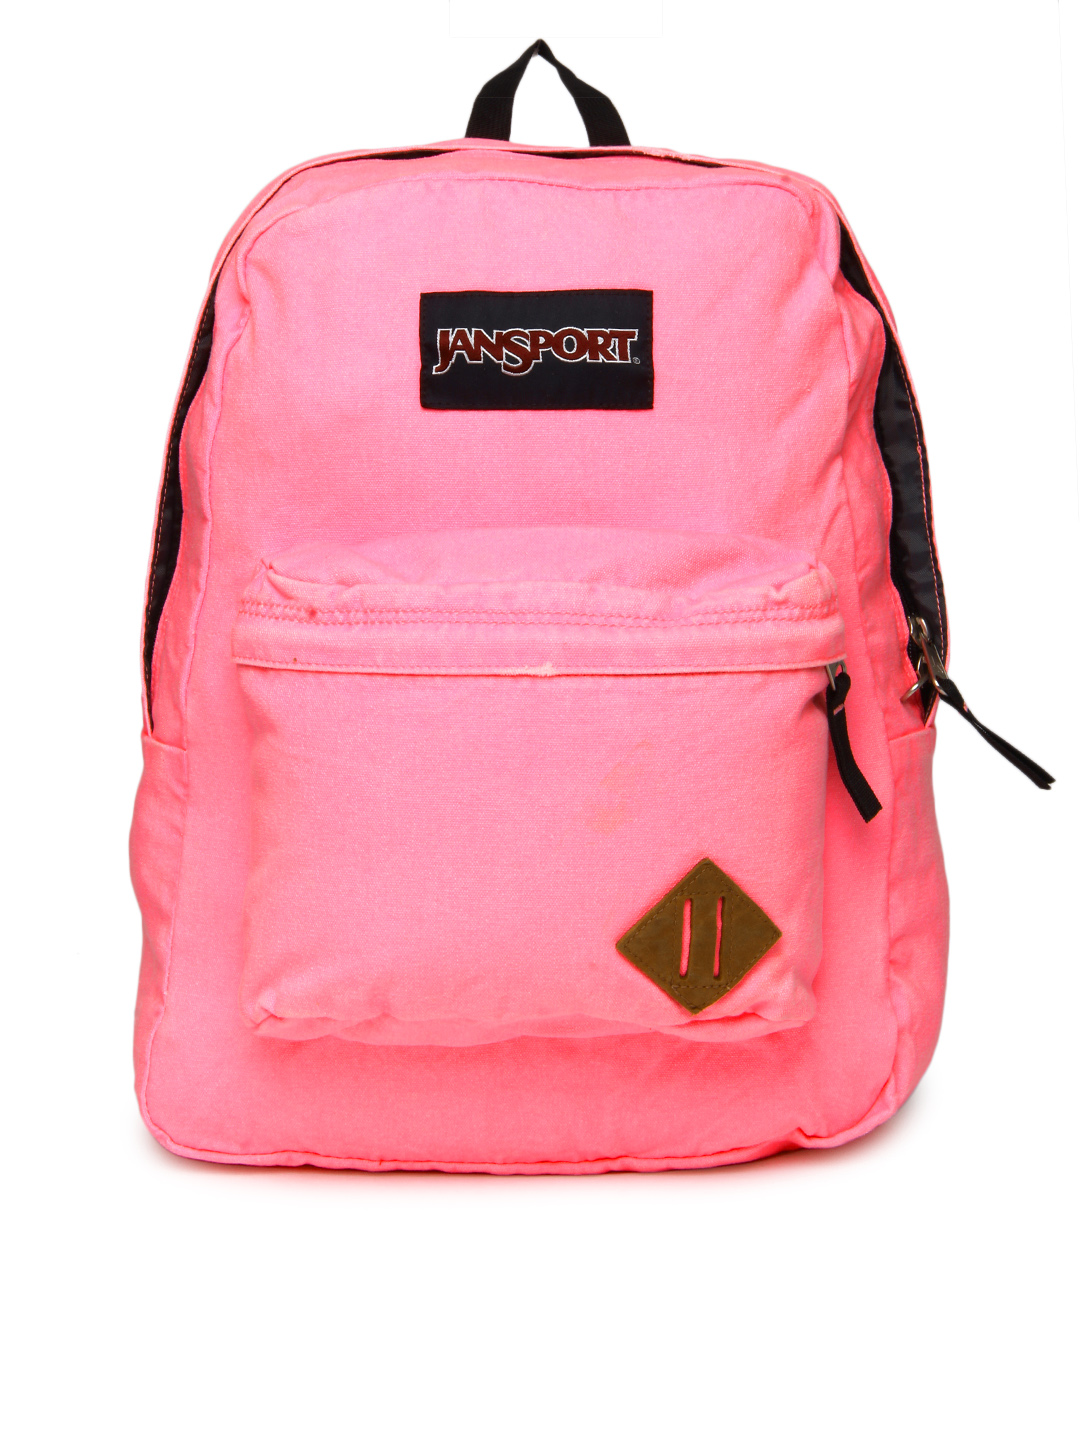 Jansport Backpacks Pink 5JSkqMoM